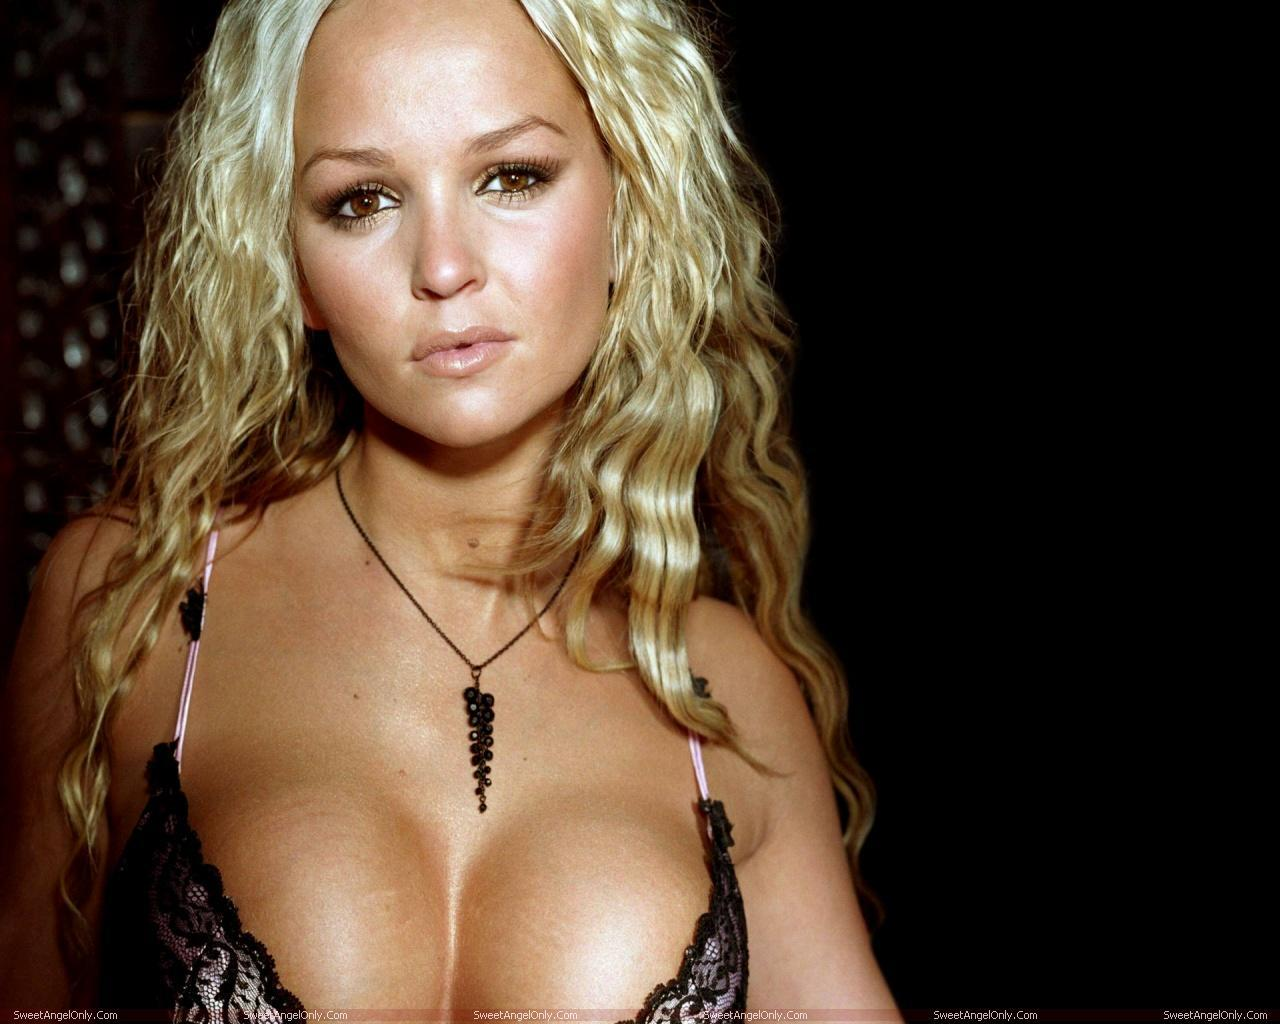 http://2.bp.blogspot.com/--0esQ5en3kU/TWZOVzjWqLI/AAAAAAAAEnI/WlomzVnp7lM/s1600/actress_jennifer_ellison_hot_wallpapers_in_bikini_sweetangelonly_08.jpg